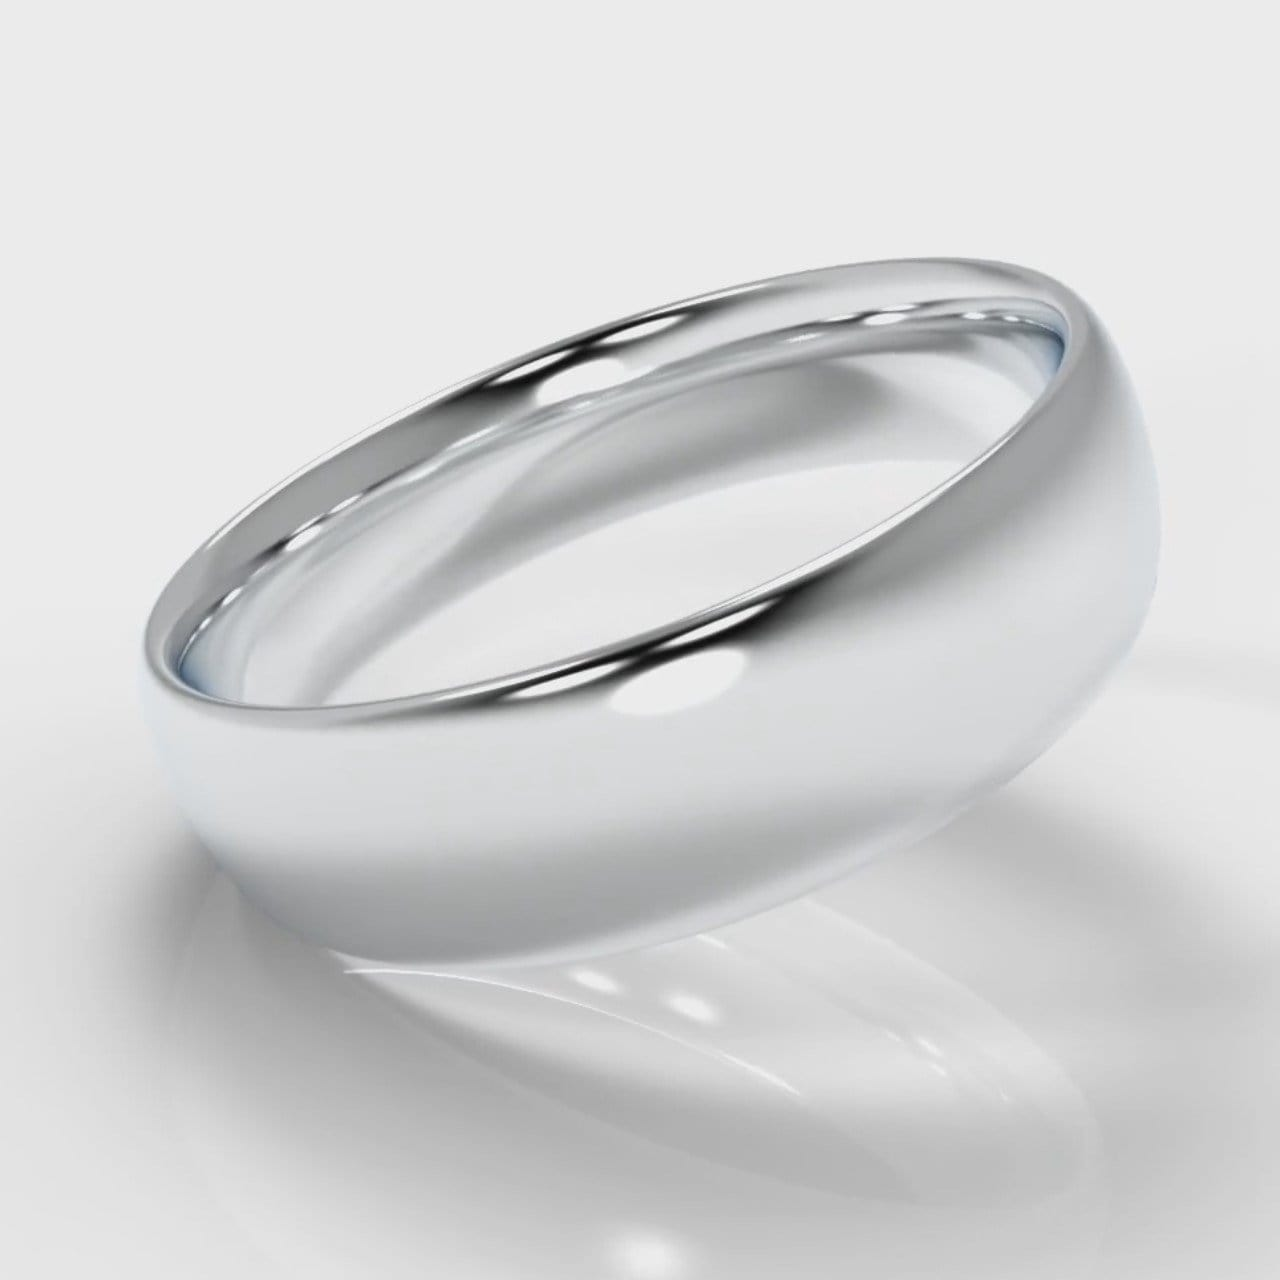 6mm Court Shaped Comfort Fit Wedding Ring